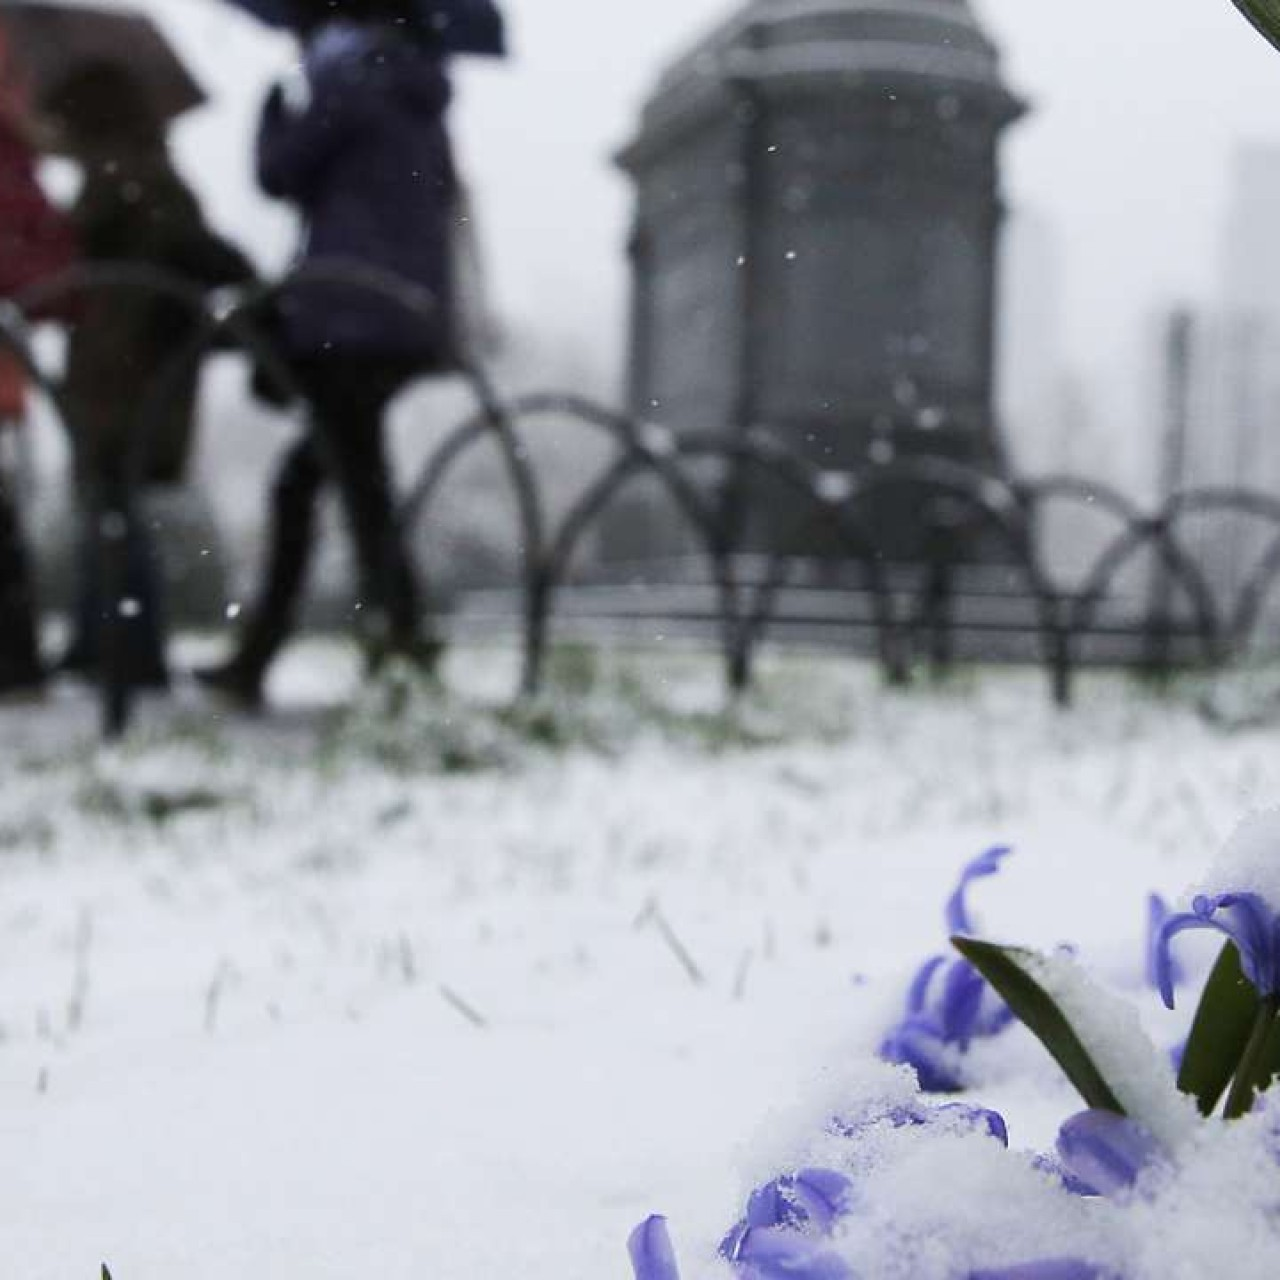 Political Portent Written In Slush At >> Us Belted By Spring Snow Storm South China Morning Post